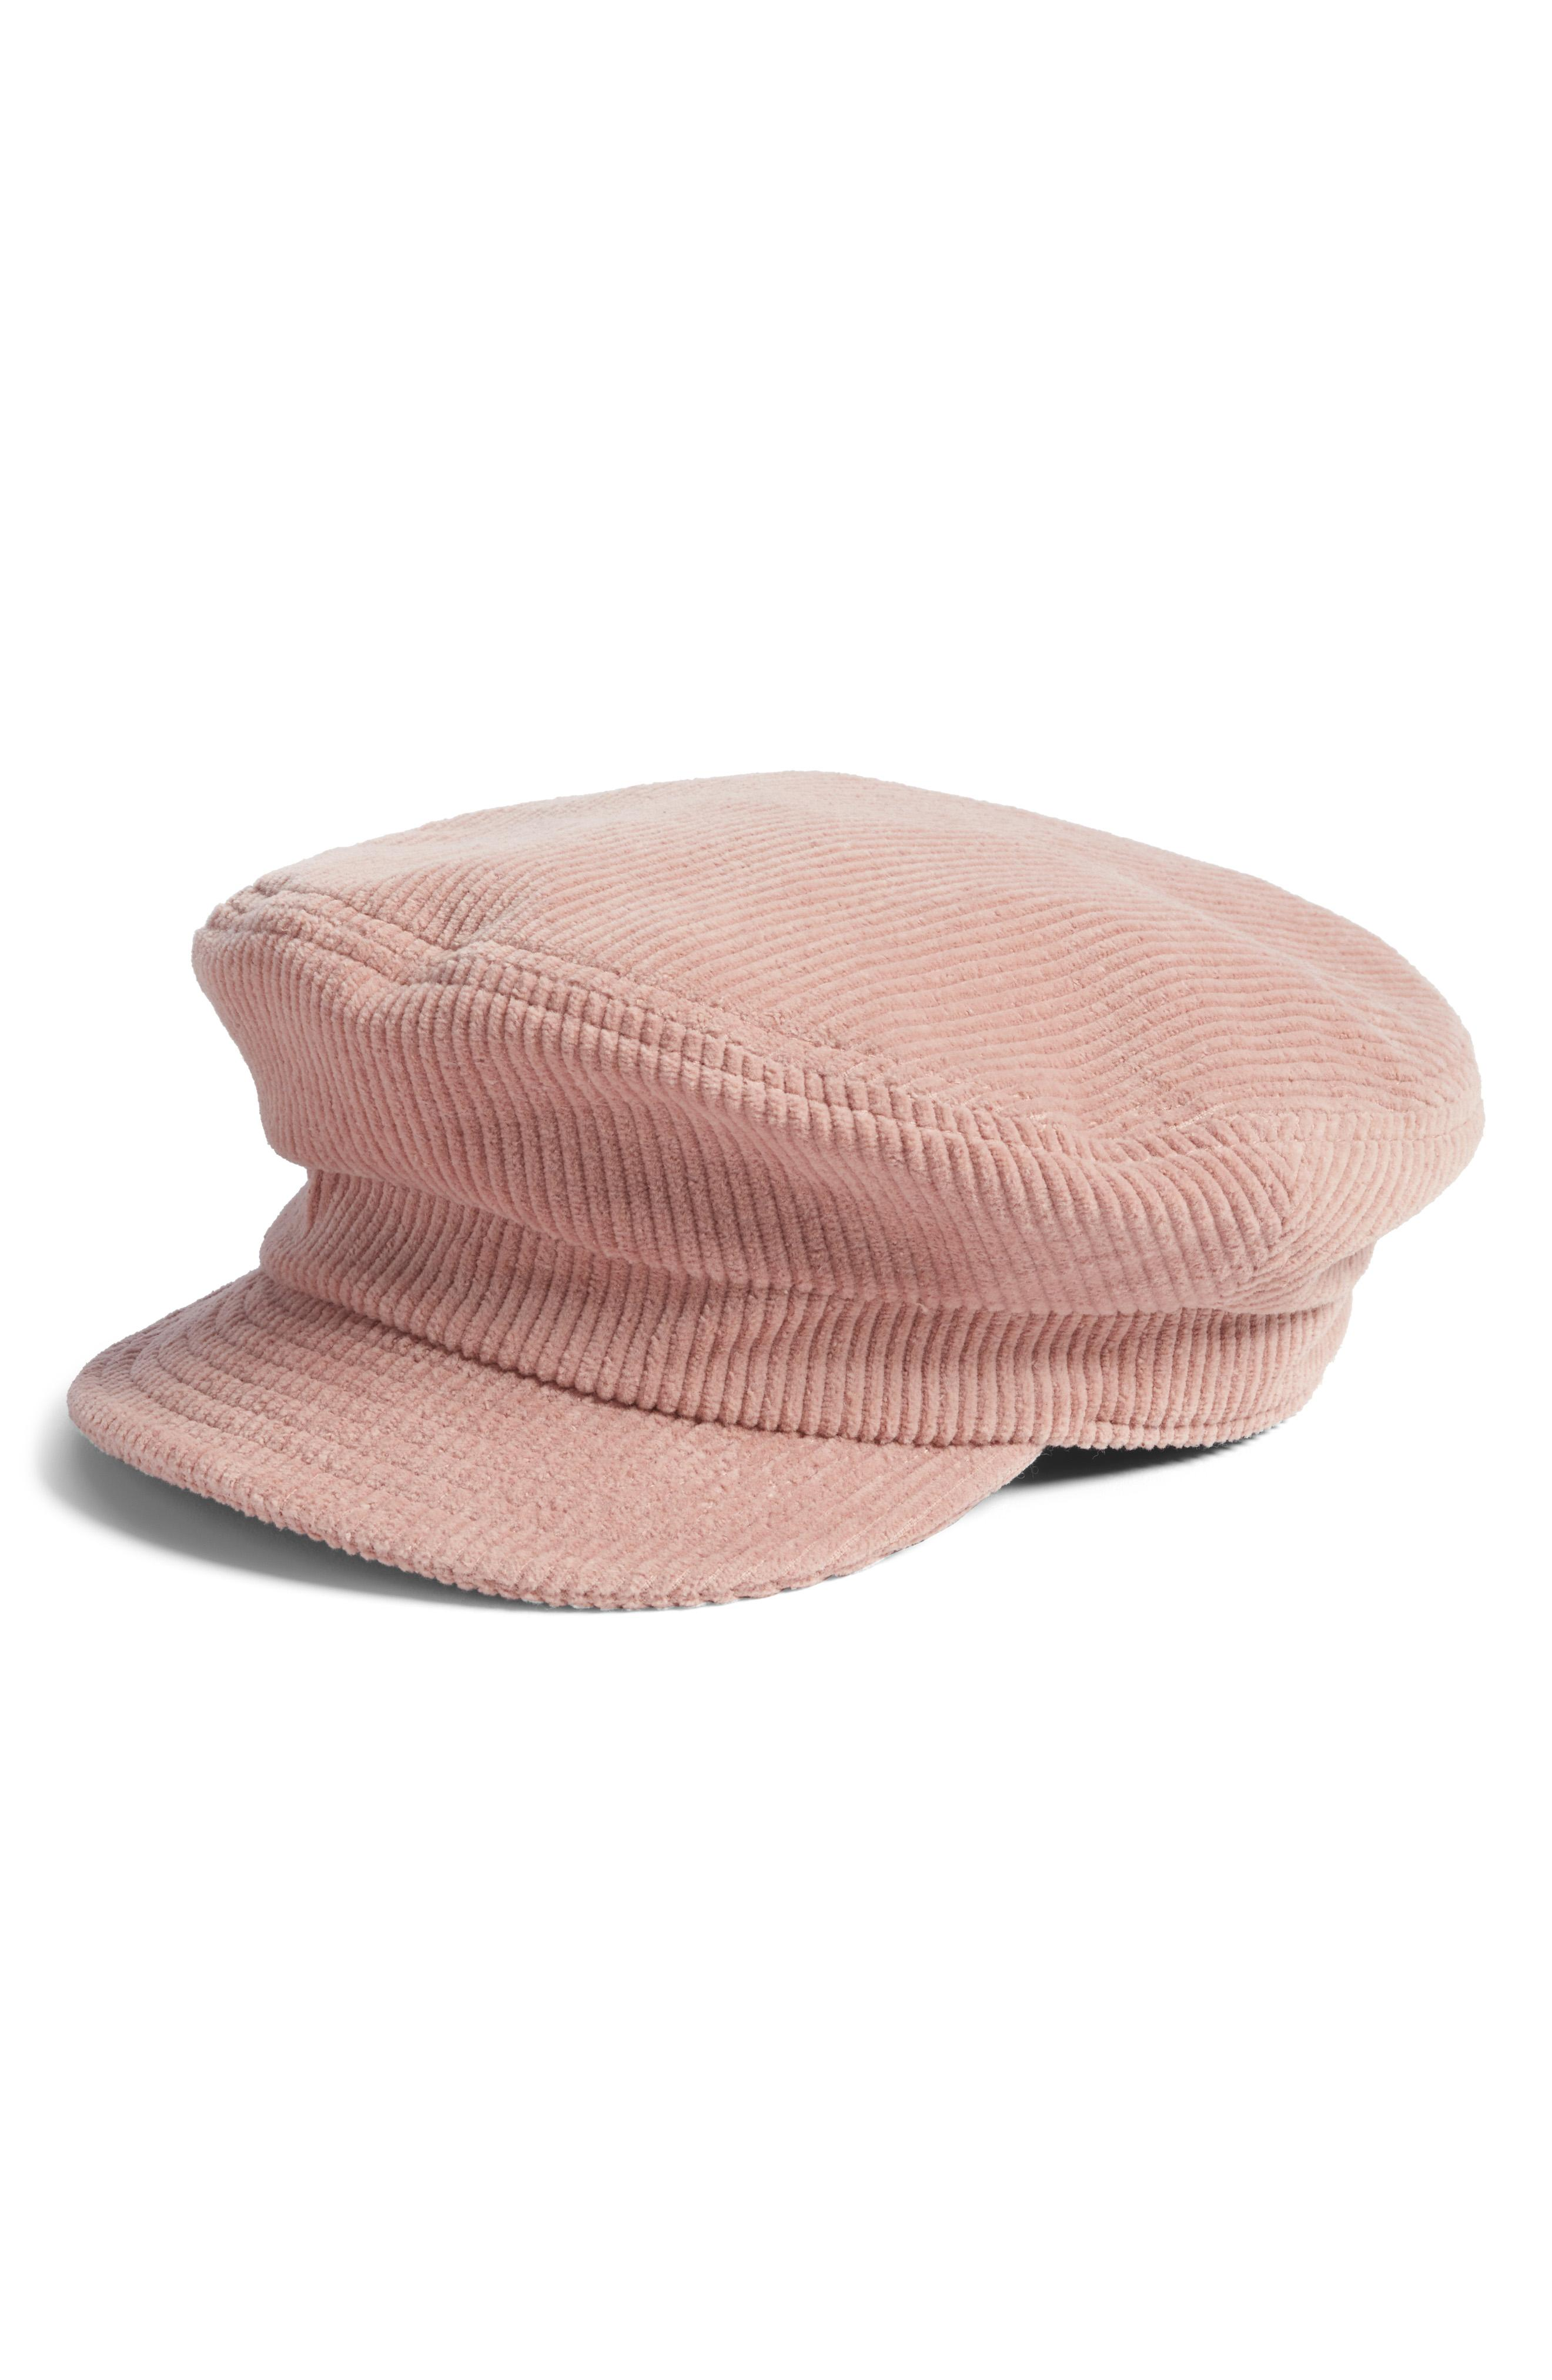 Brixton Fiddler Cap -- Sale: $31.90 / After Sale: $48{ }(Image: Courtesy Nordstrom)